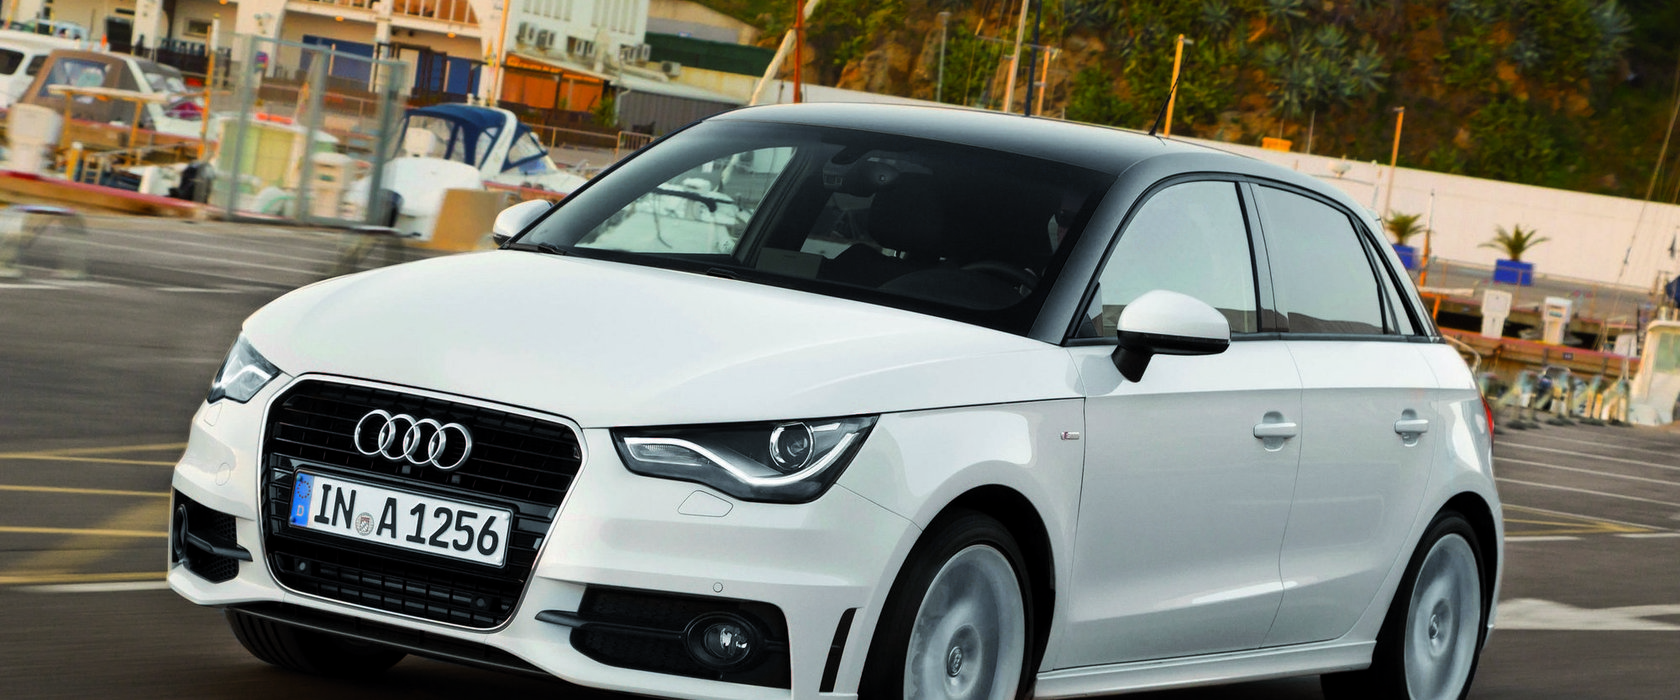 audi a1 sportback 1 6 tdi 90 cv s tronic red live. Black Bedroom Furniture Sets. Home Design Ideas